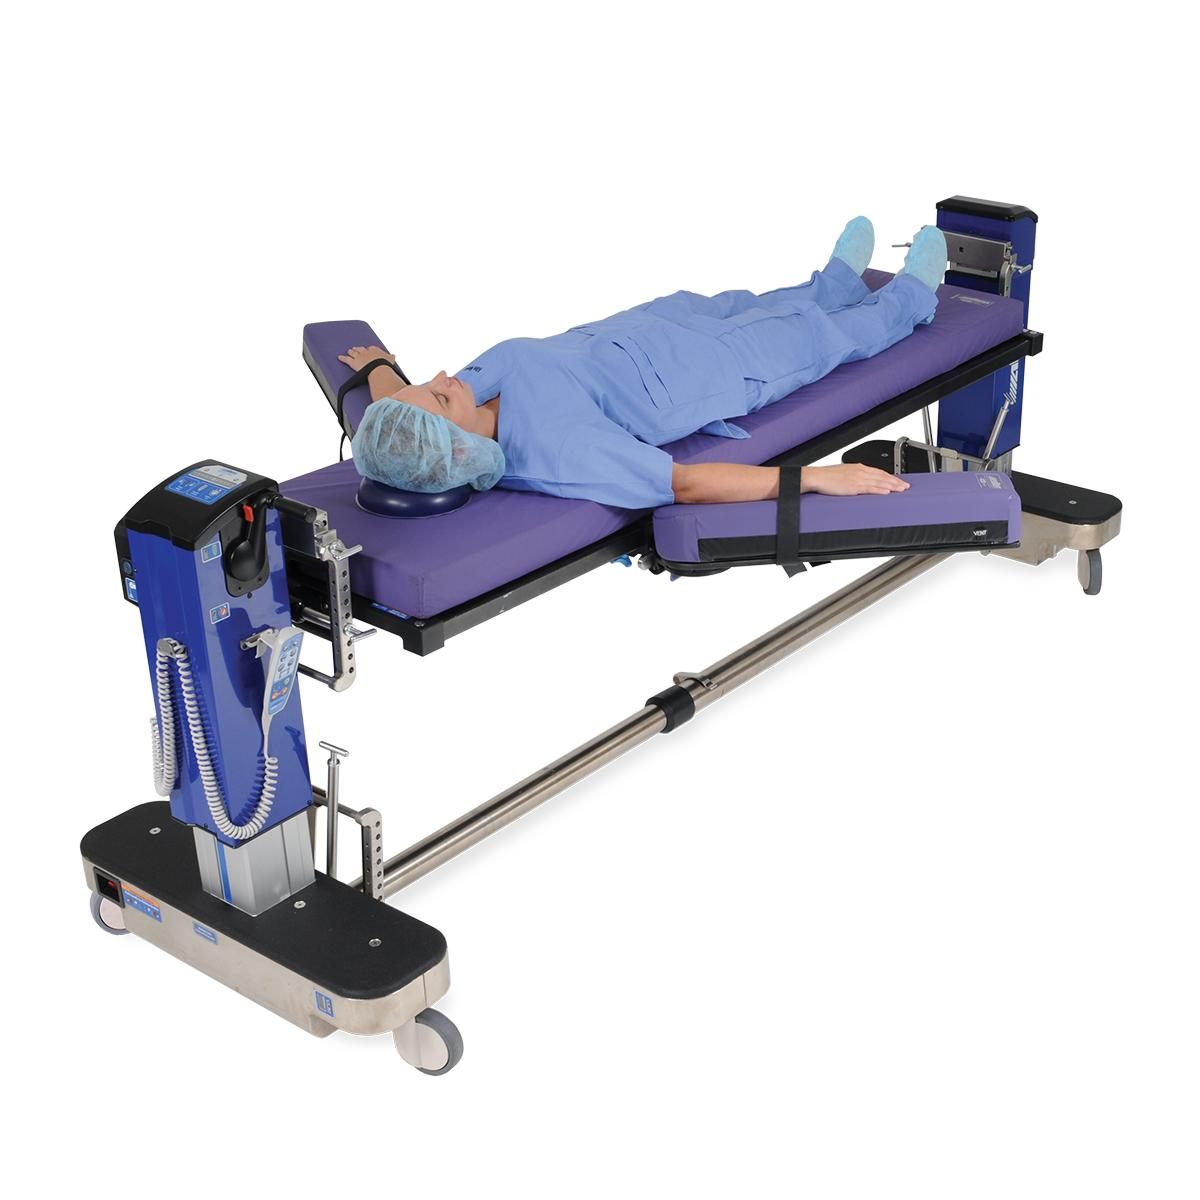 Allen Advance Table diagonal view with patient supine, arms extended